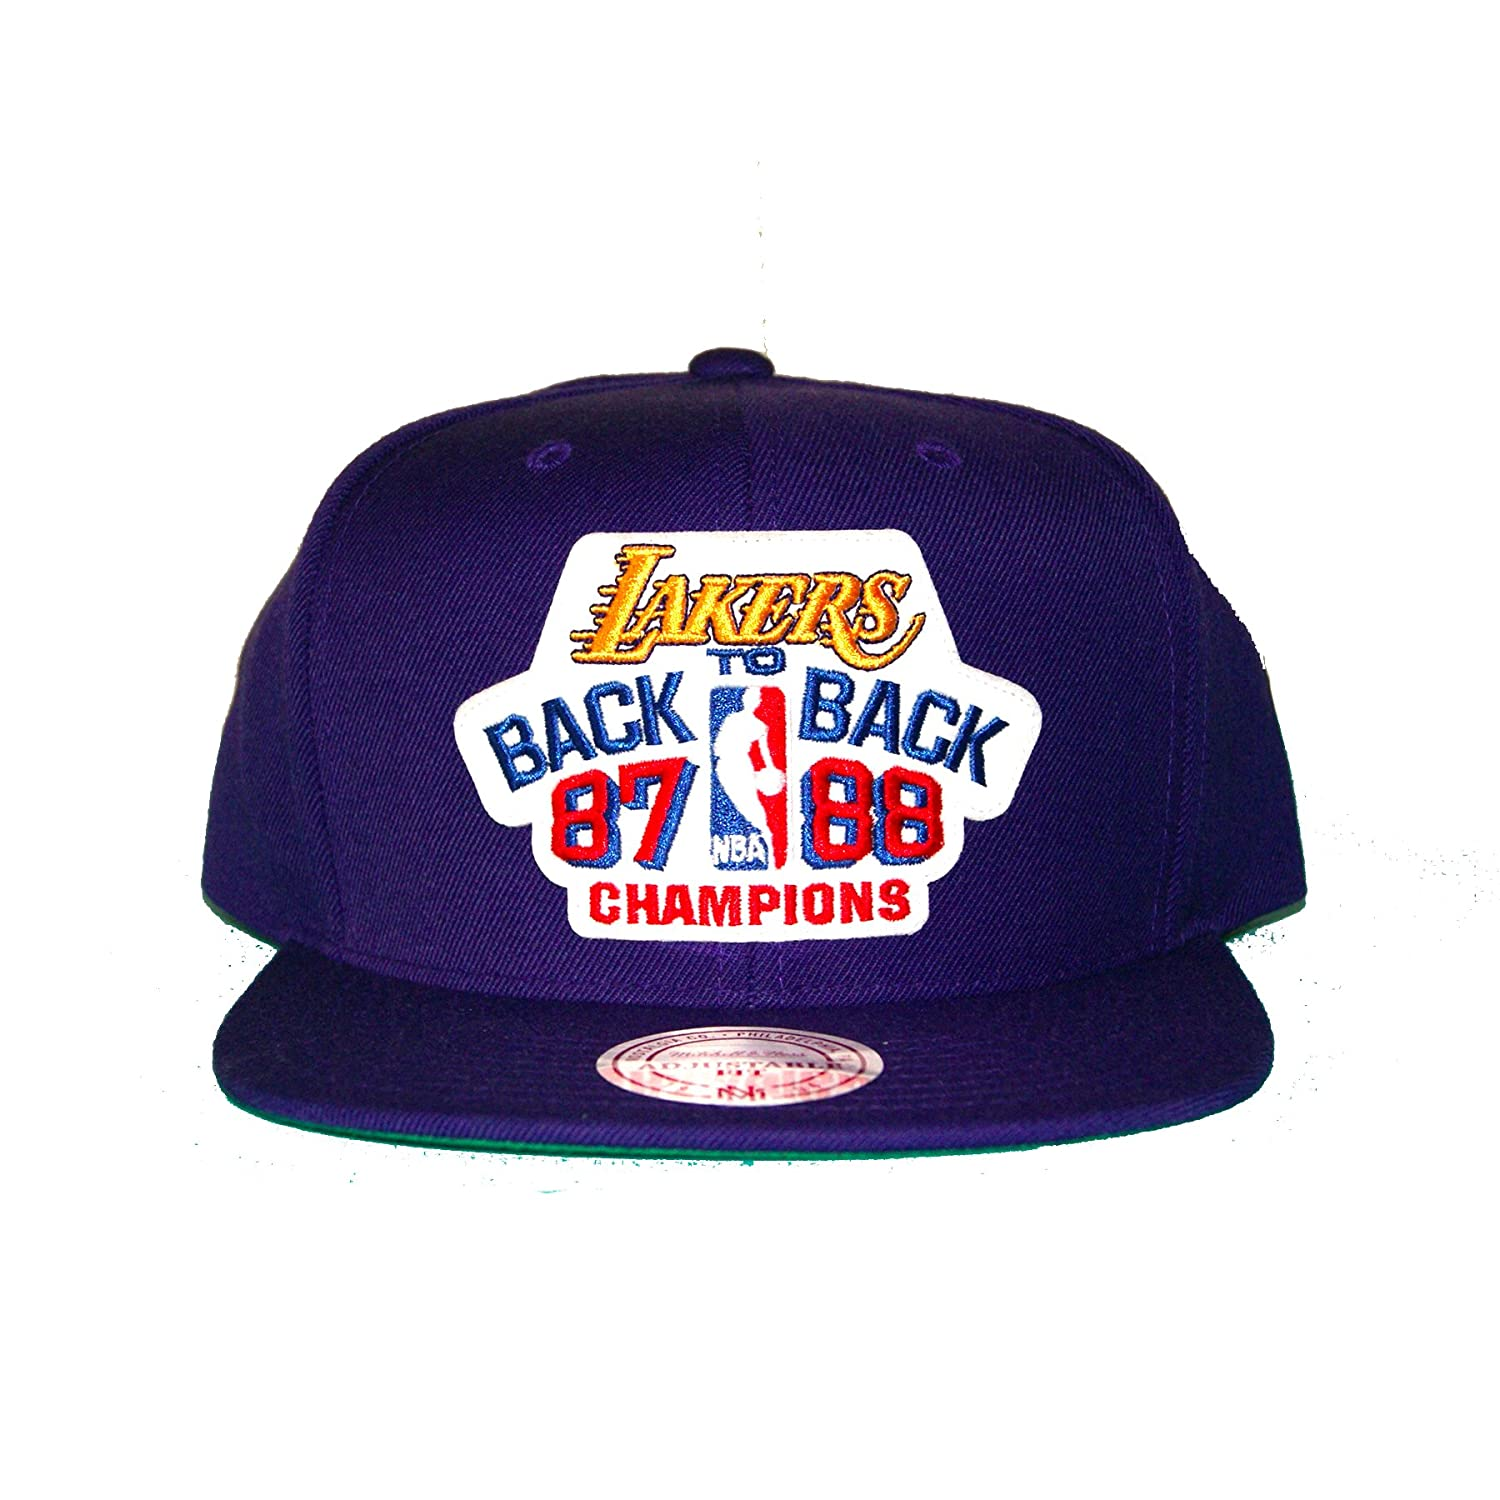 Mitchell Ness 87 88 espalda 2 los angeles lakers nba Champions ...